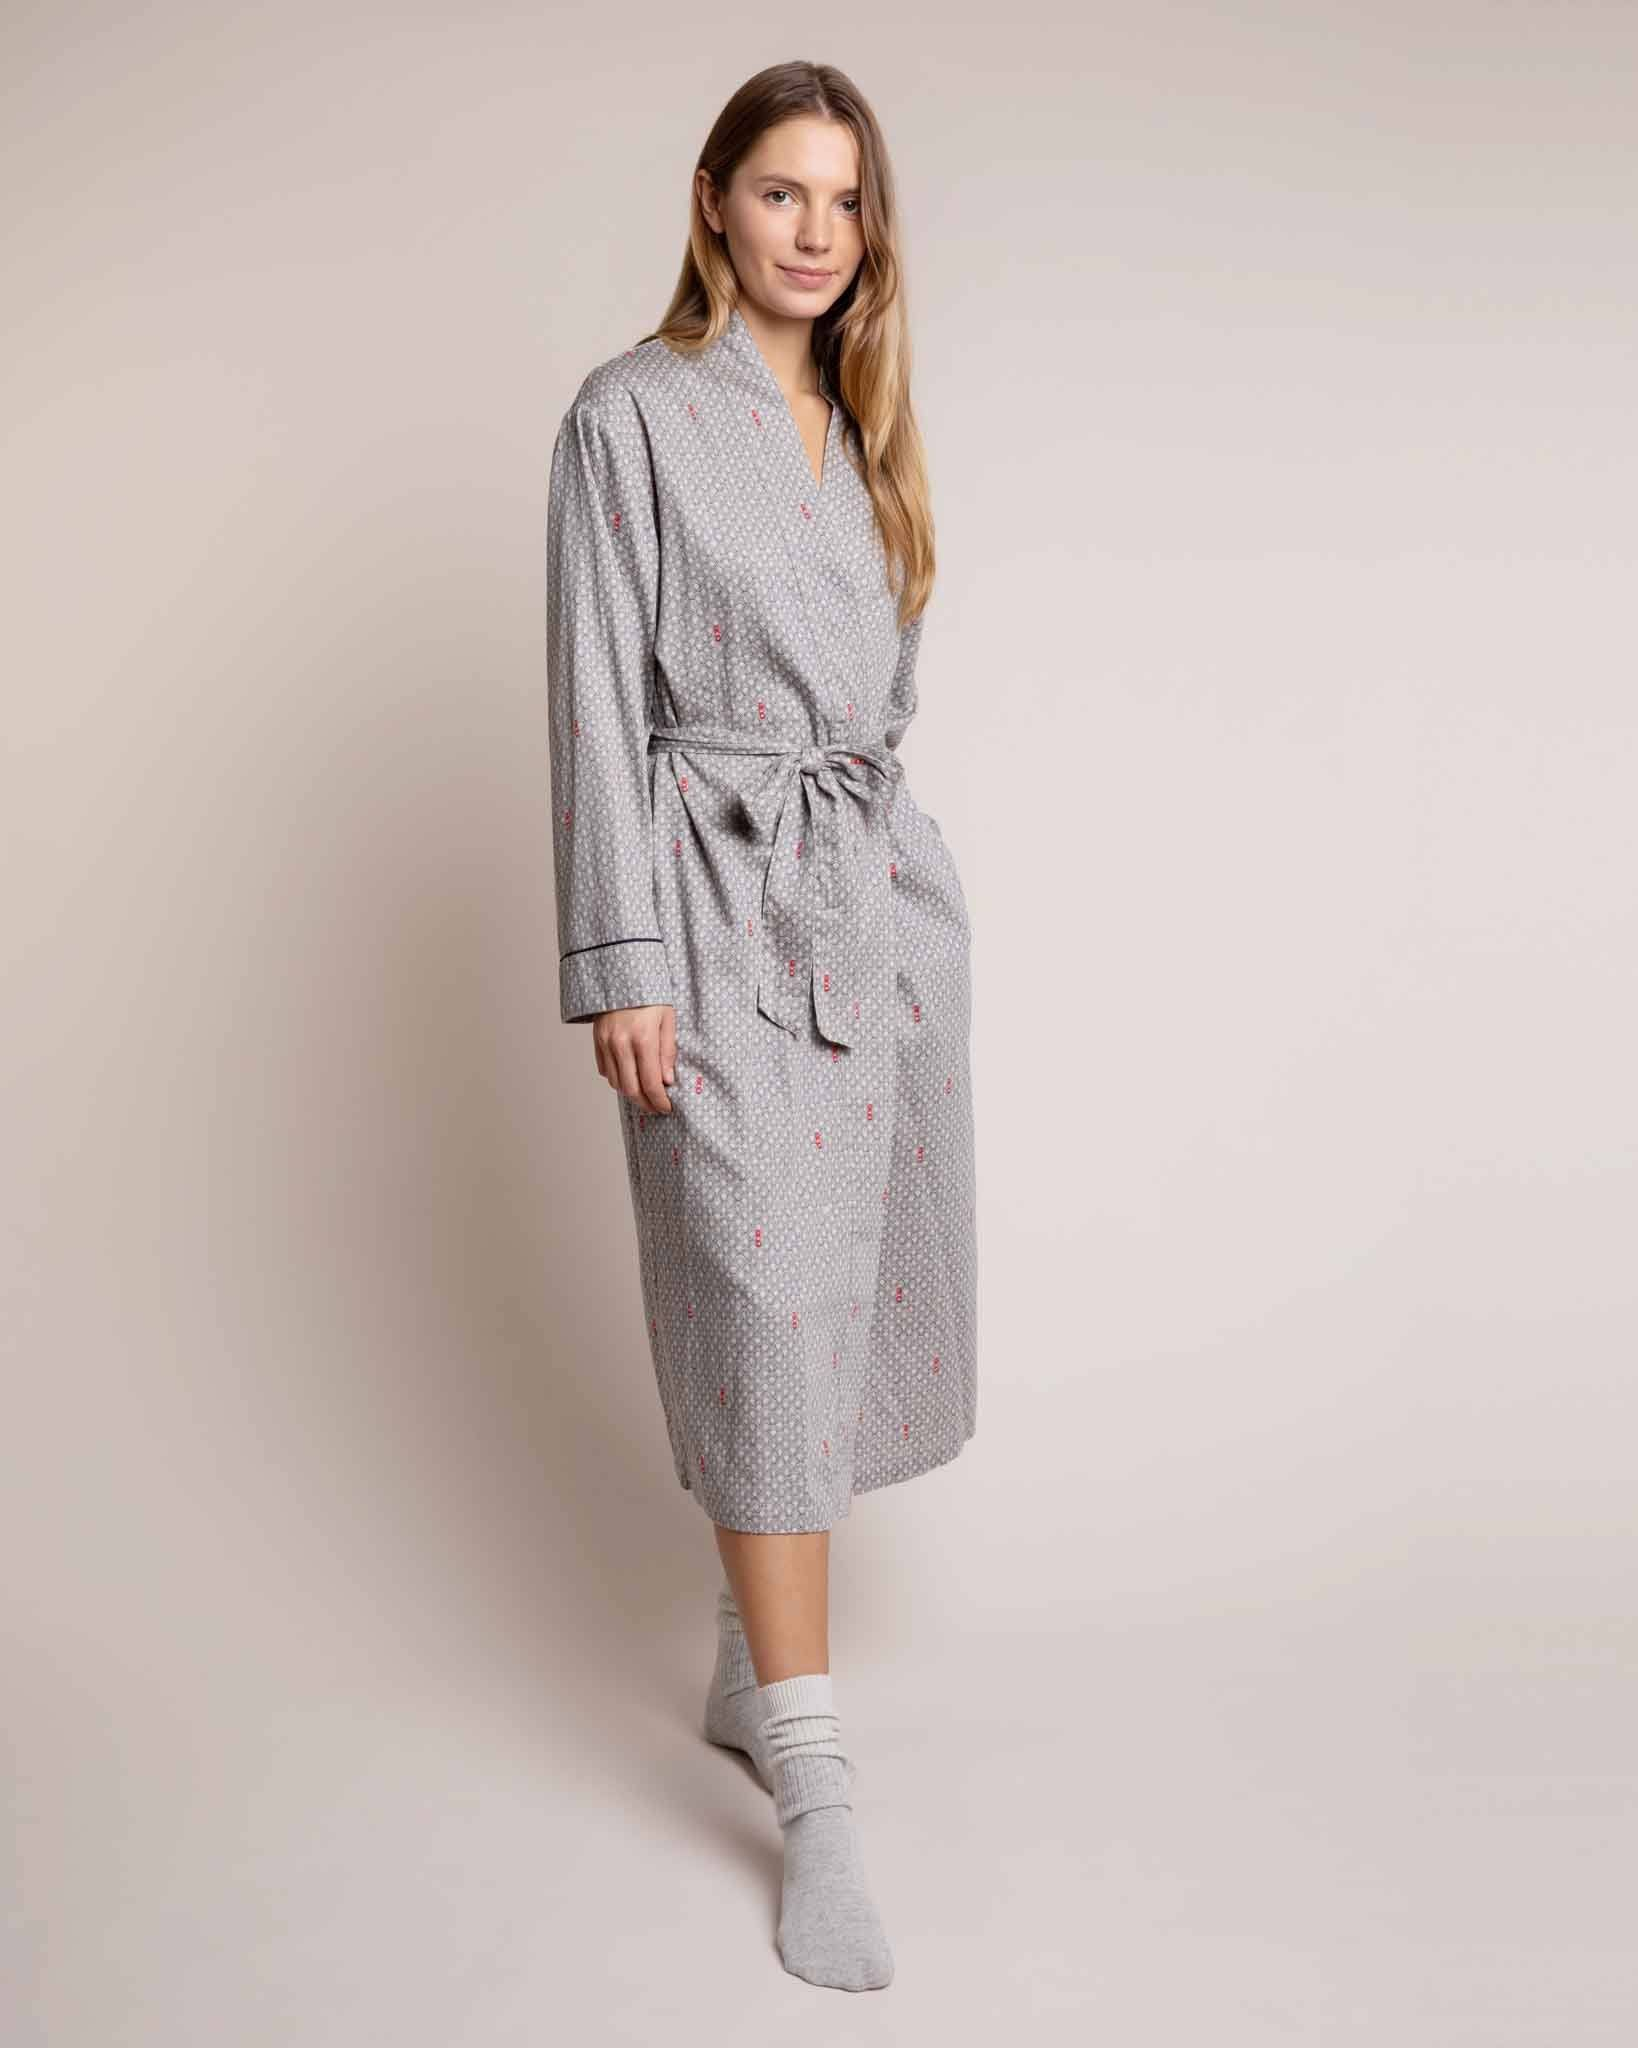 Cosy Cotton Robe Port in a Storm Dressing Gowns Yawn